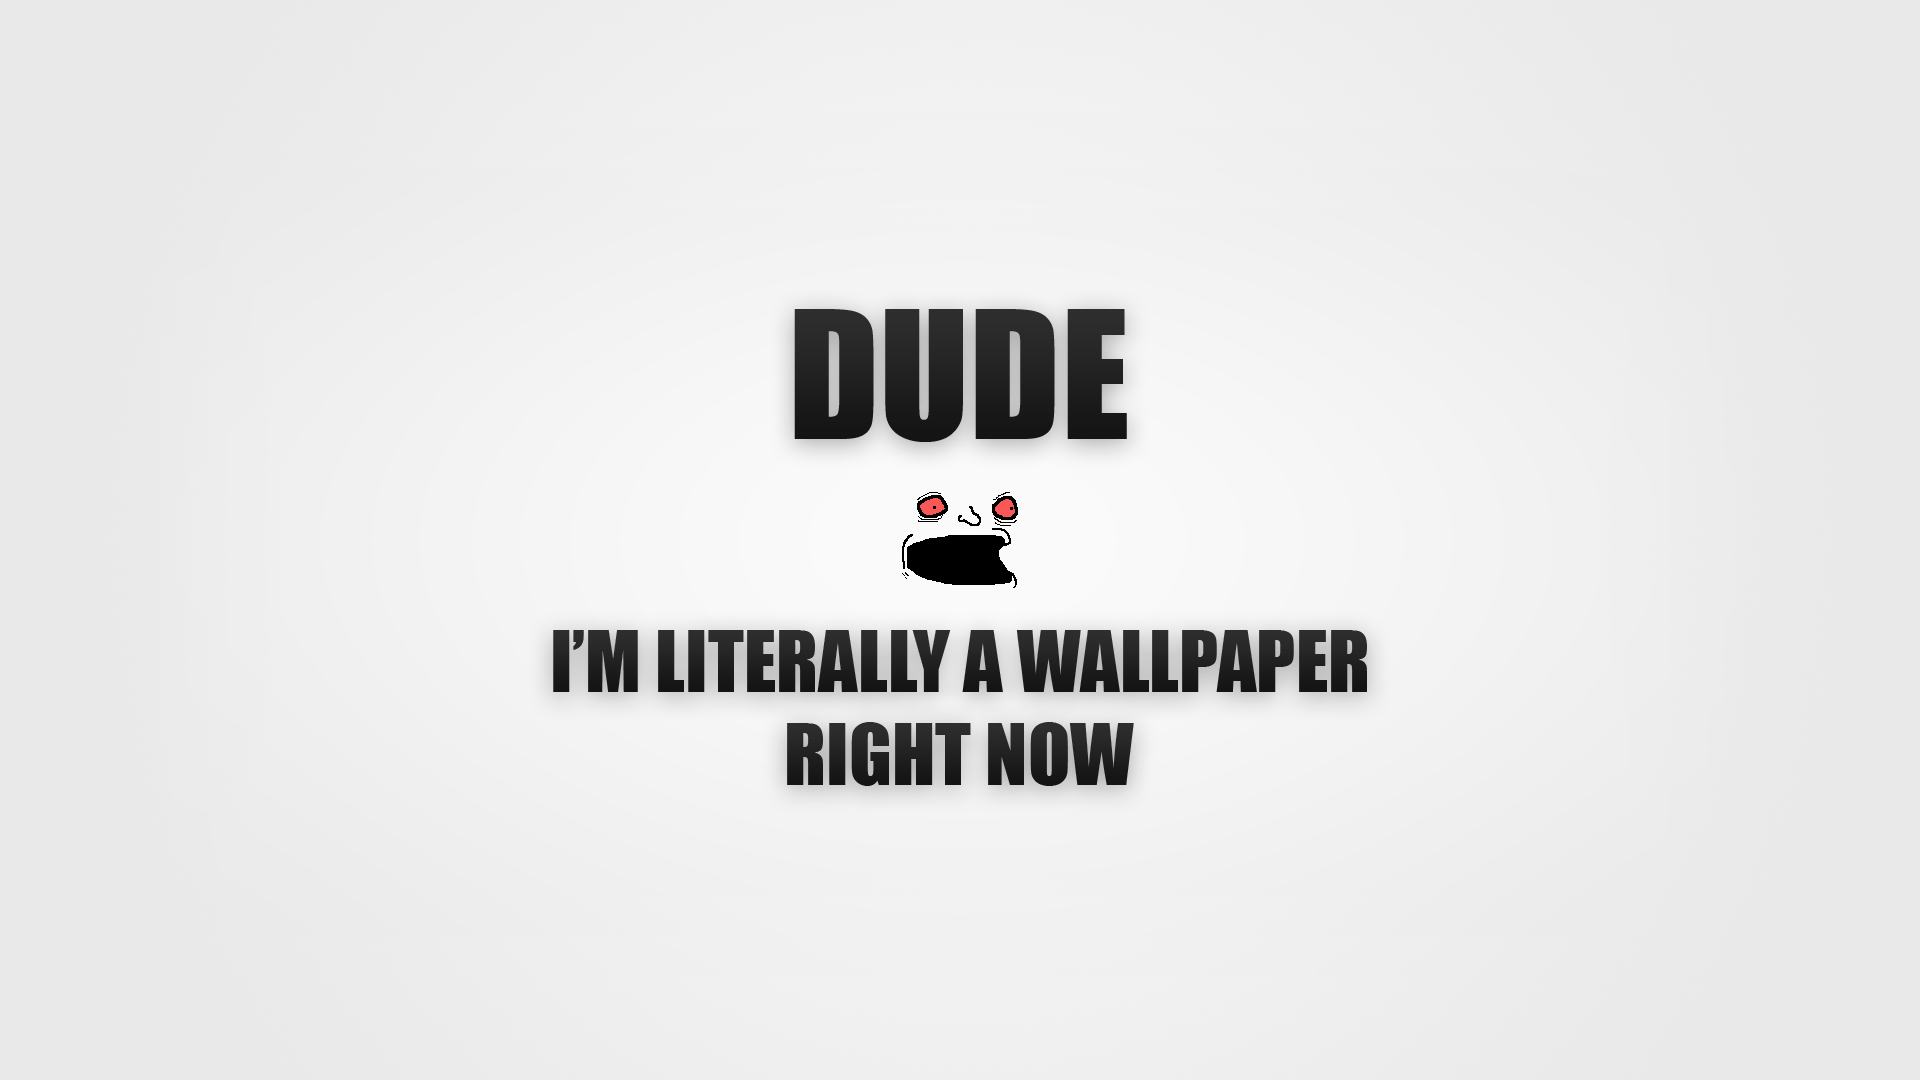 Funny Quote Wallpapers Funny Quotes Wallpaper Funny Quotes Cute Wallpapers Quotes